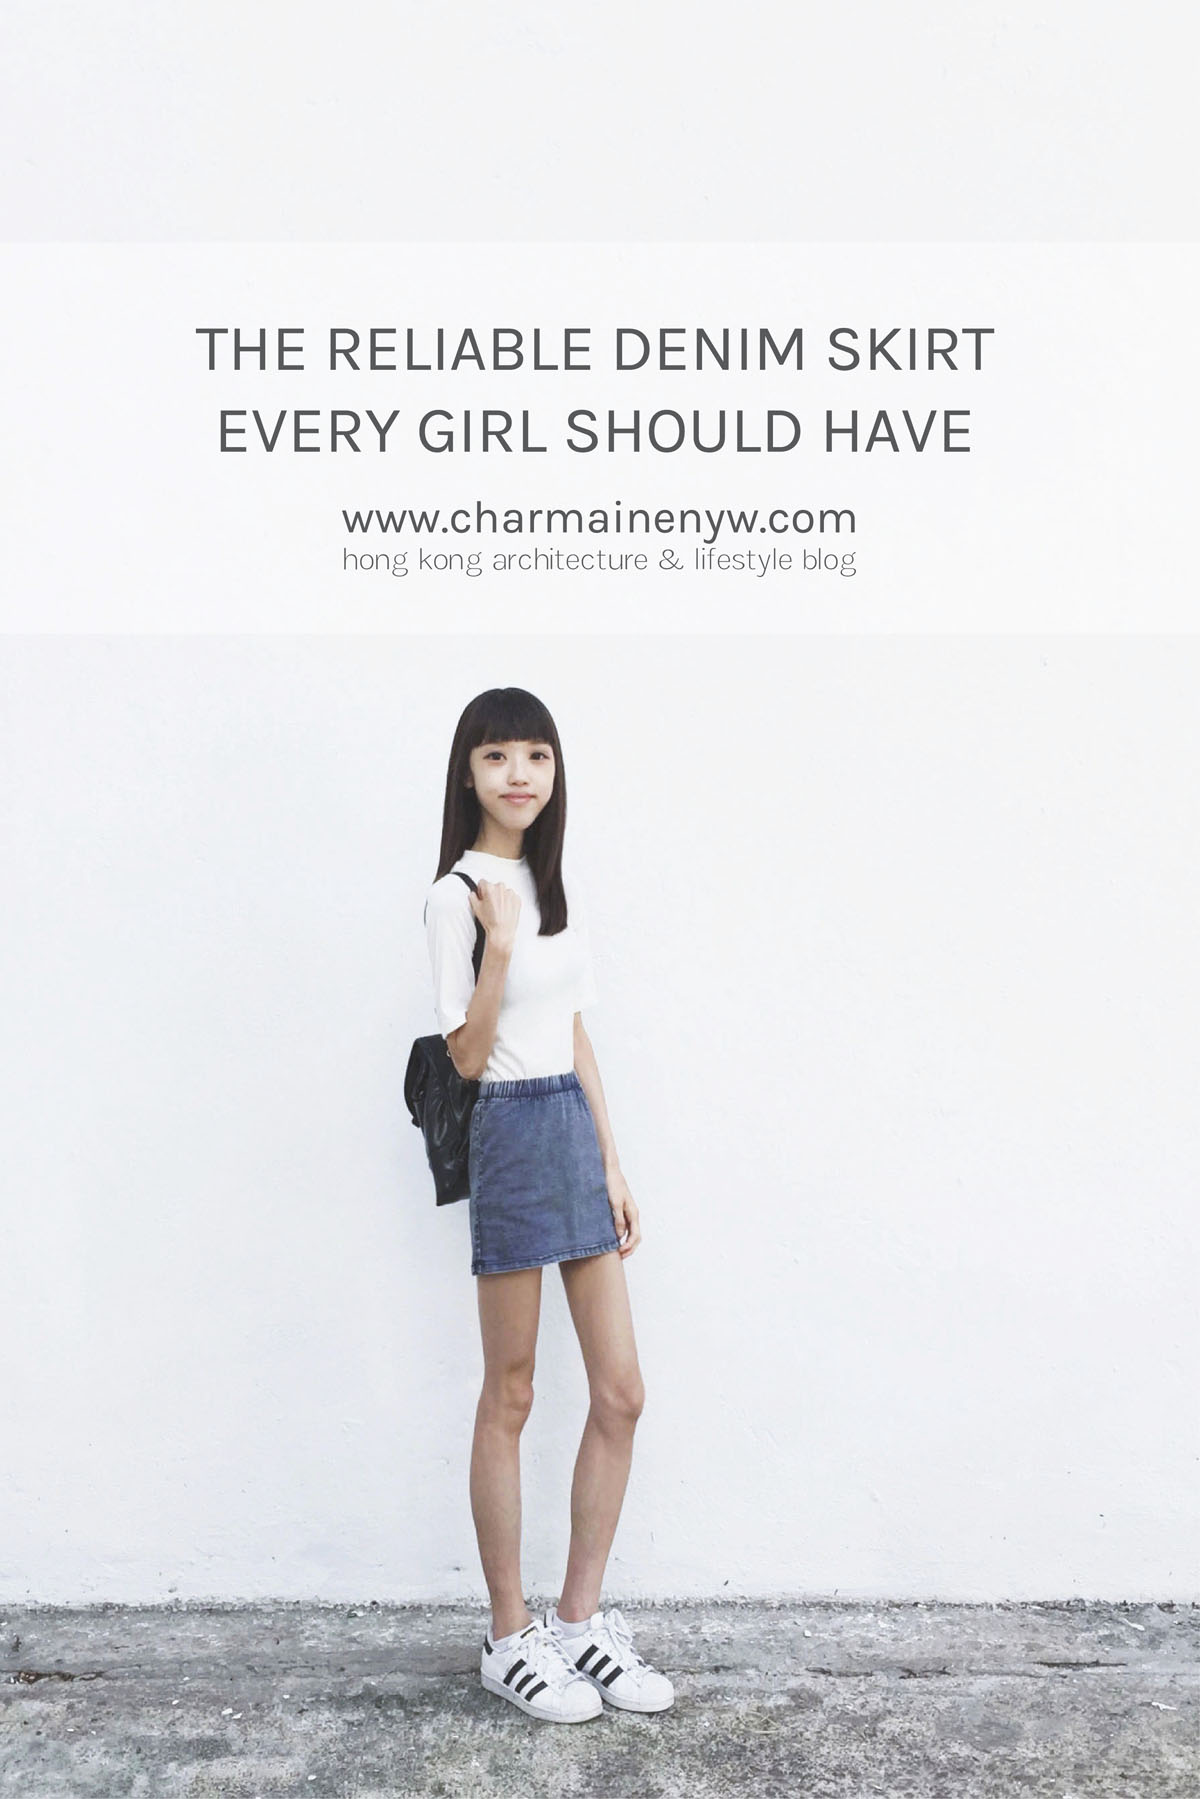 The denim skirt, a reliable piece every girl should have